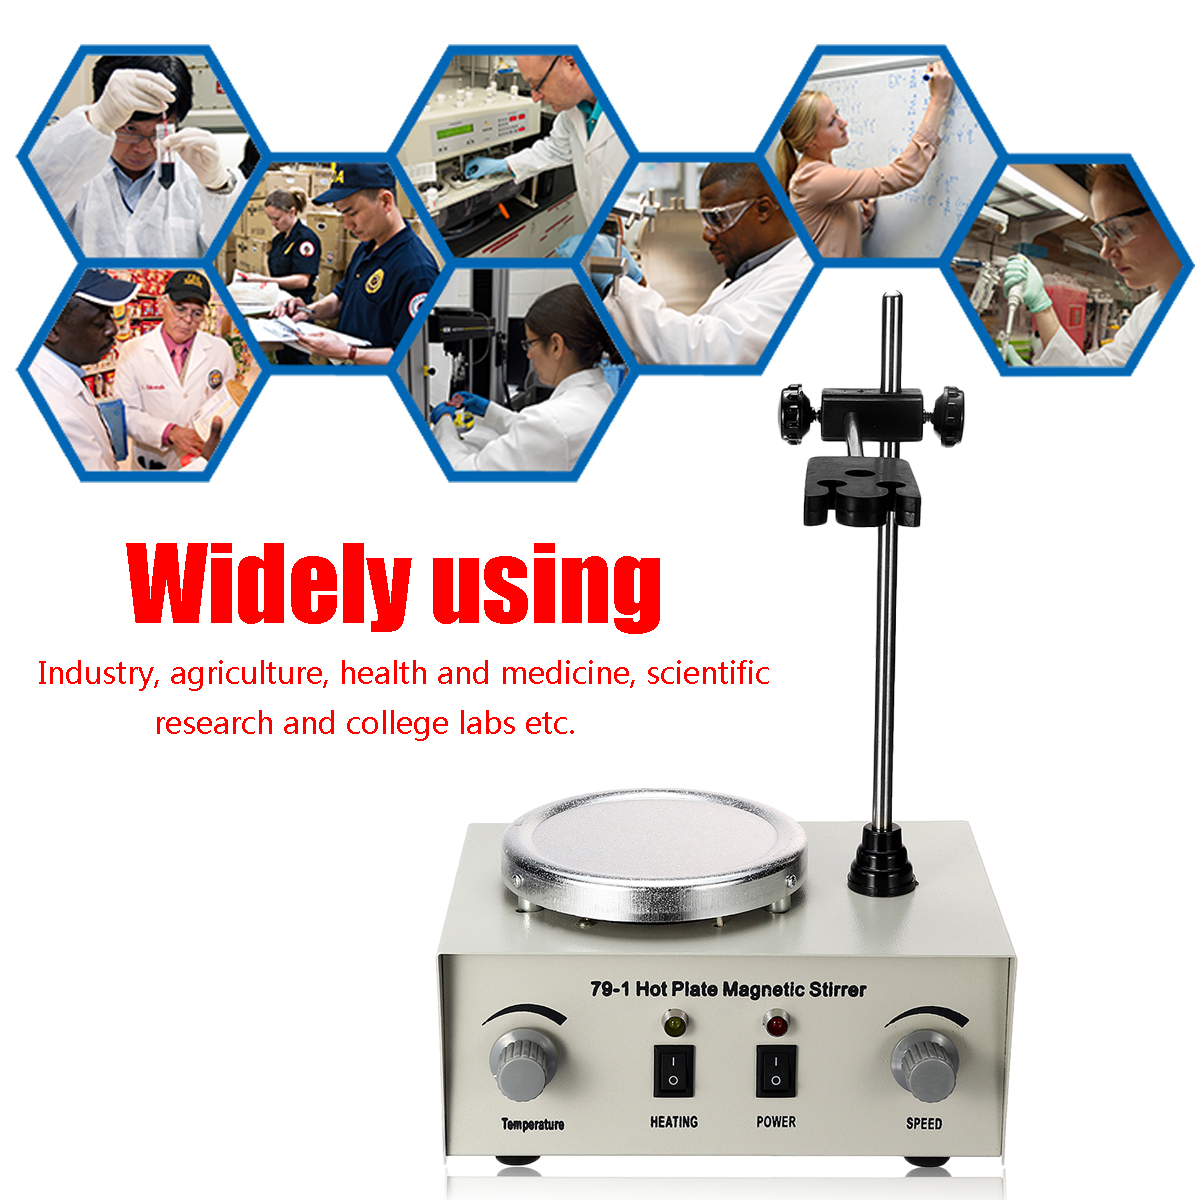 Lab Heating Dual Control Mixer US/AU/EU 79-1 110/220V 250W 1000ml Hot Plate Magnetic Stirrer No Noise/Vibration Fuses Protection